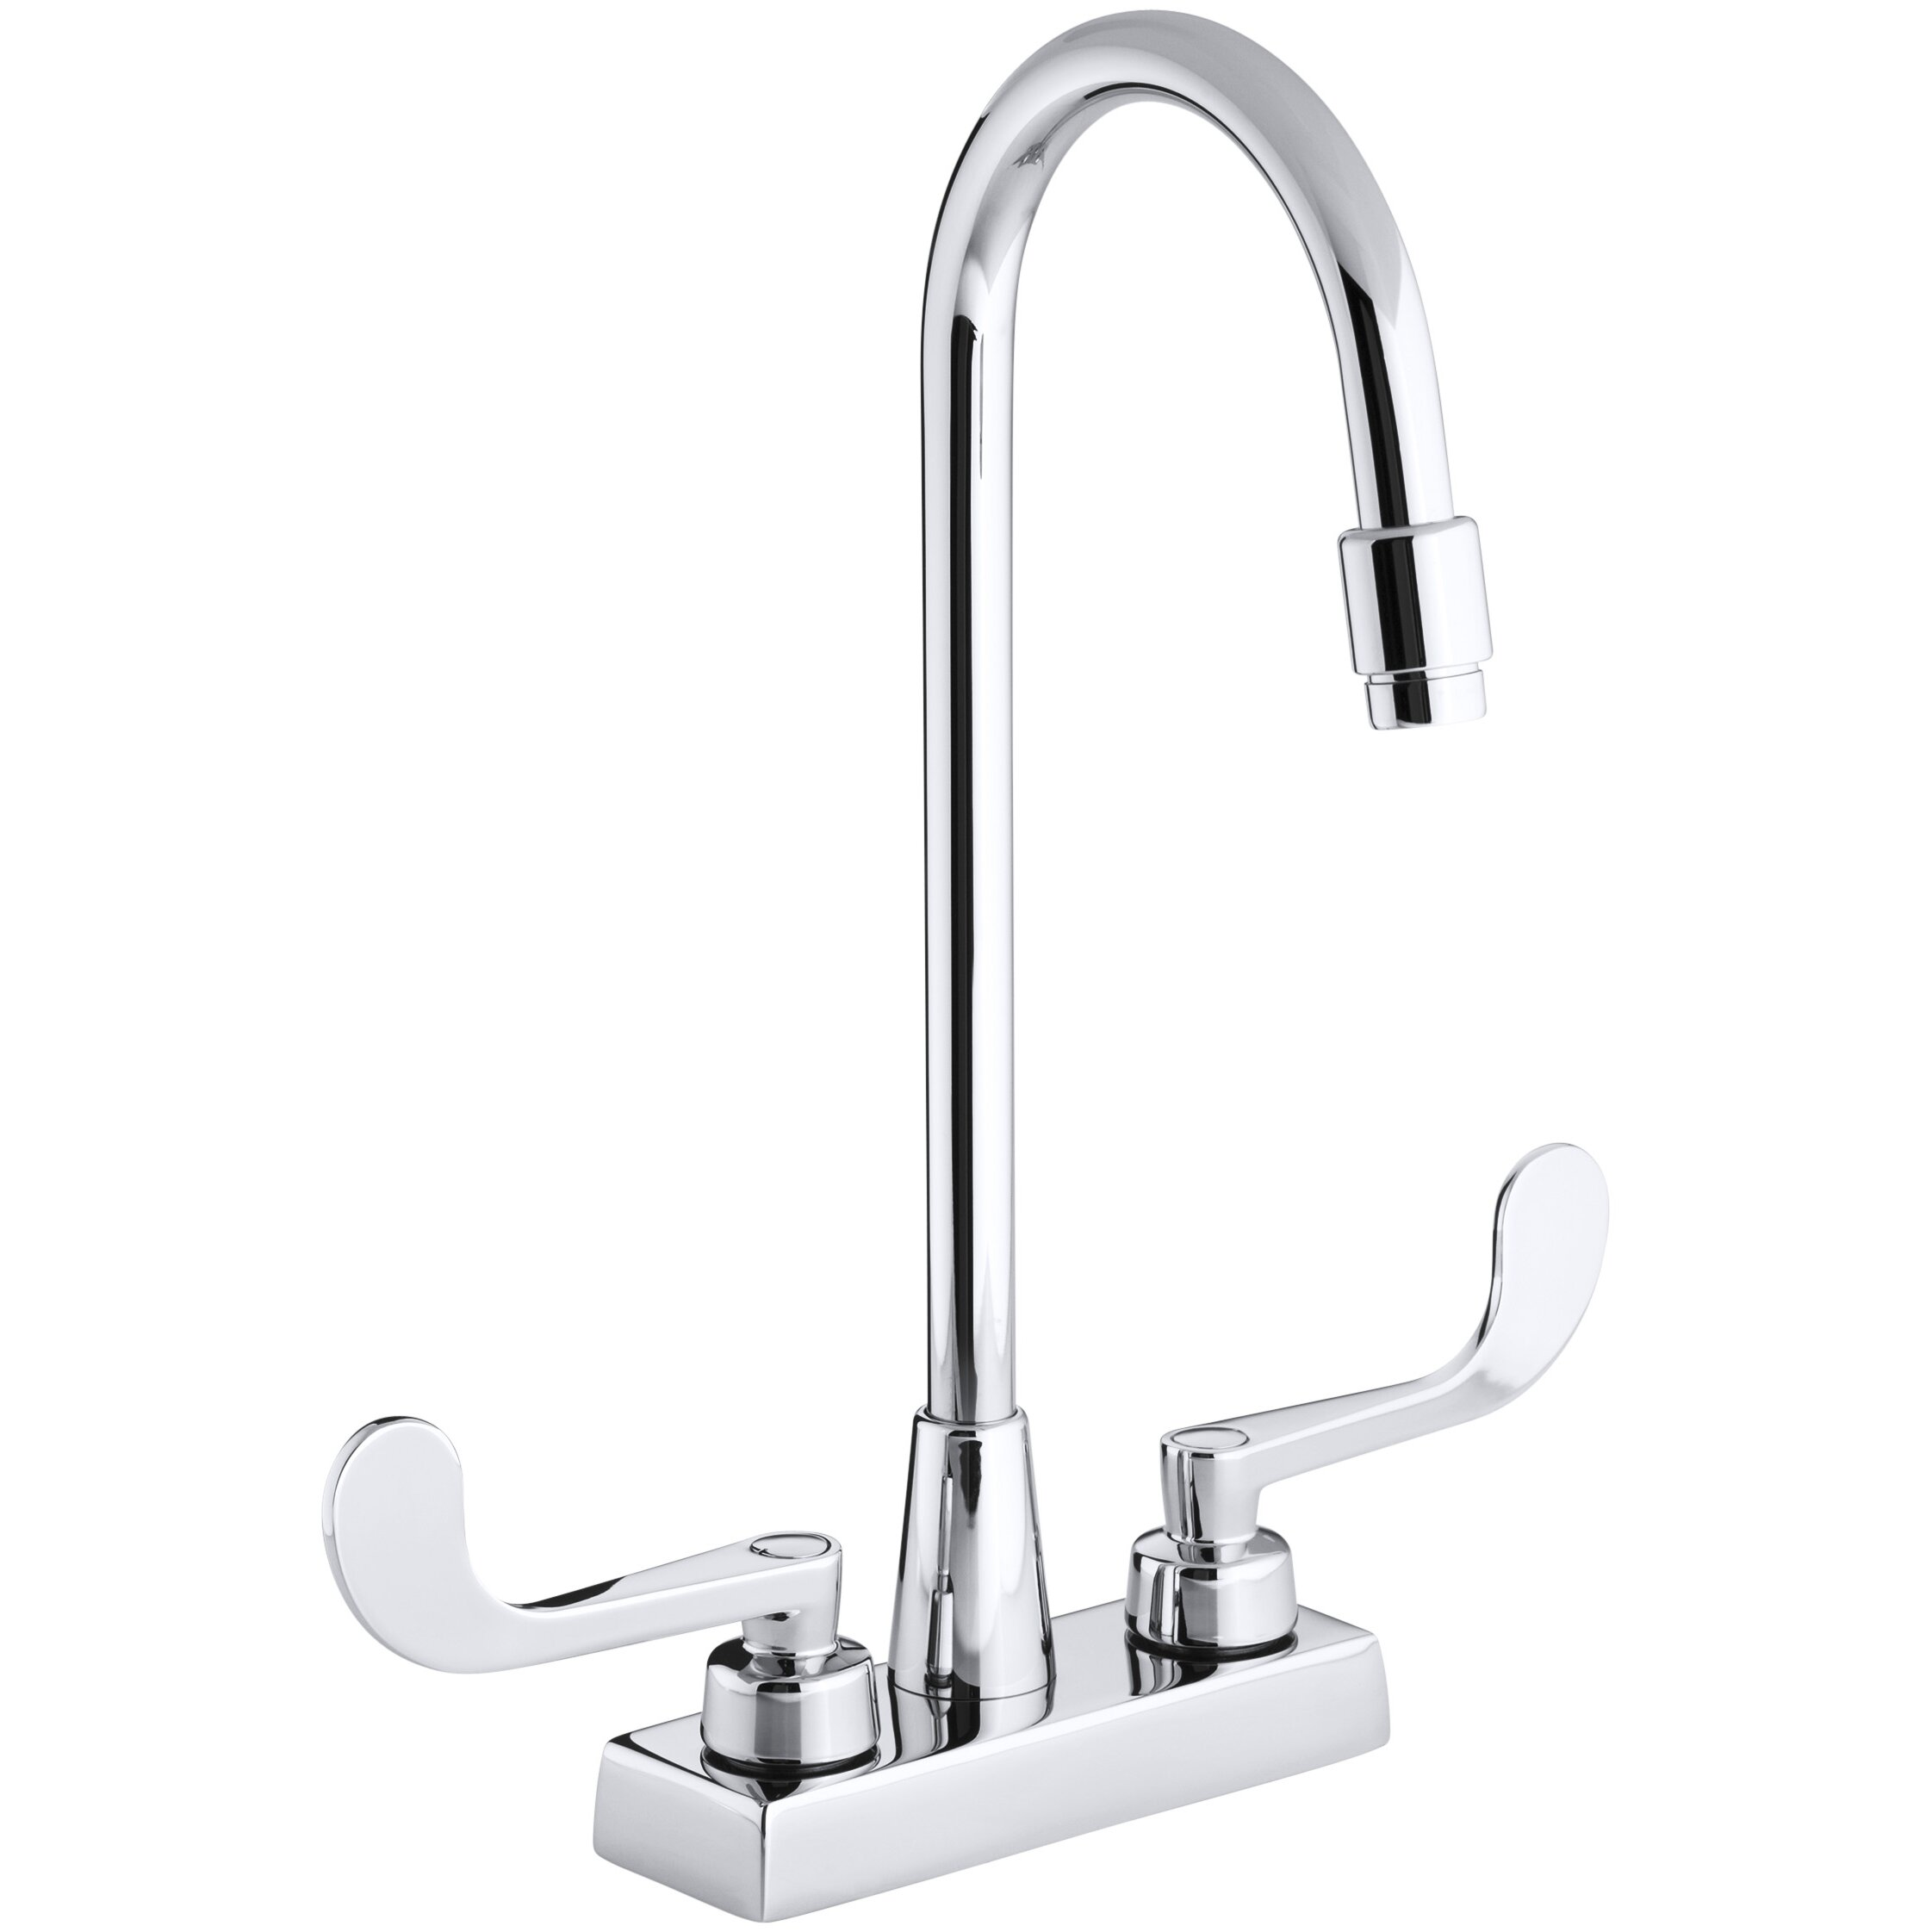 Triton Centerset Commercial Bathroom Sink Faucet With Gooseneck Spout And Wristblade Lever